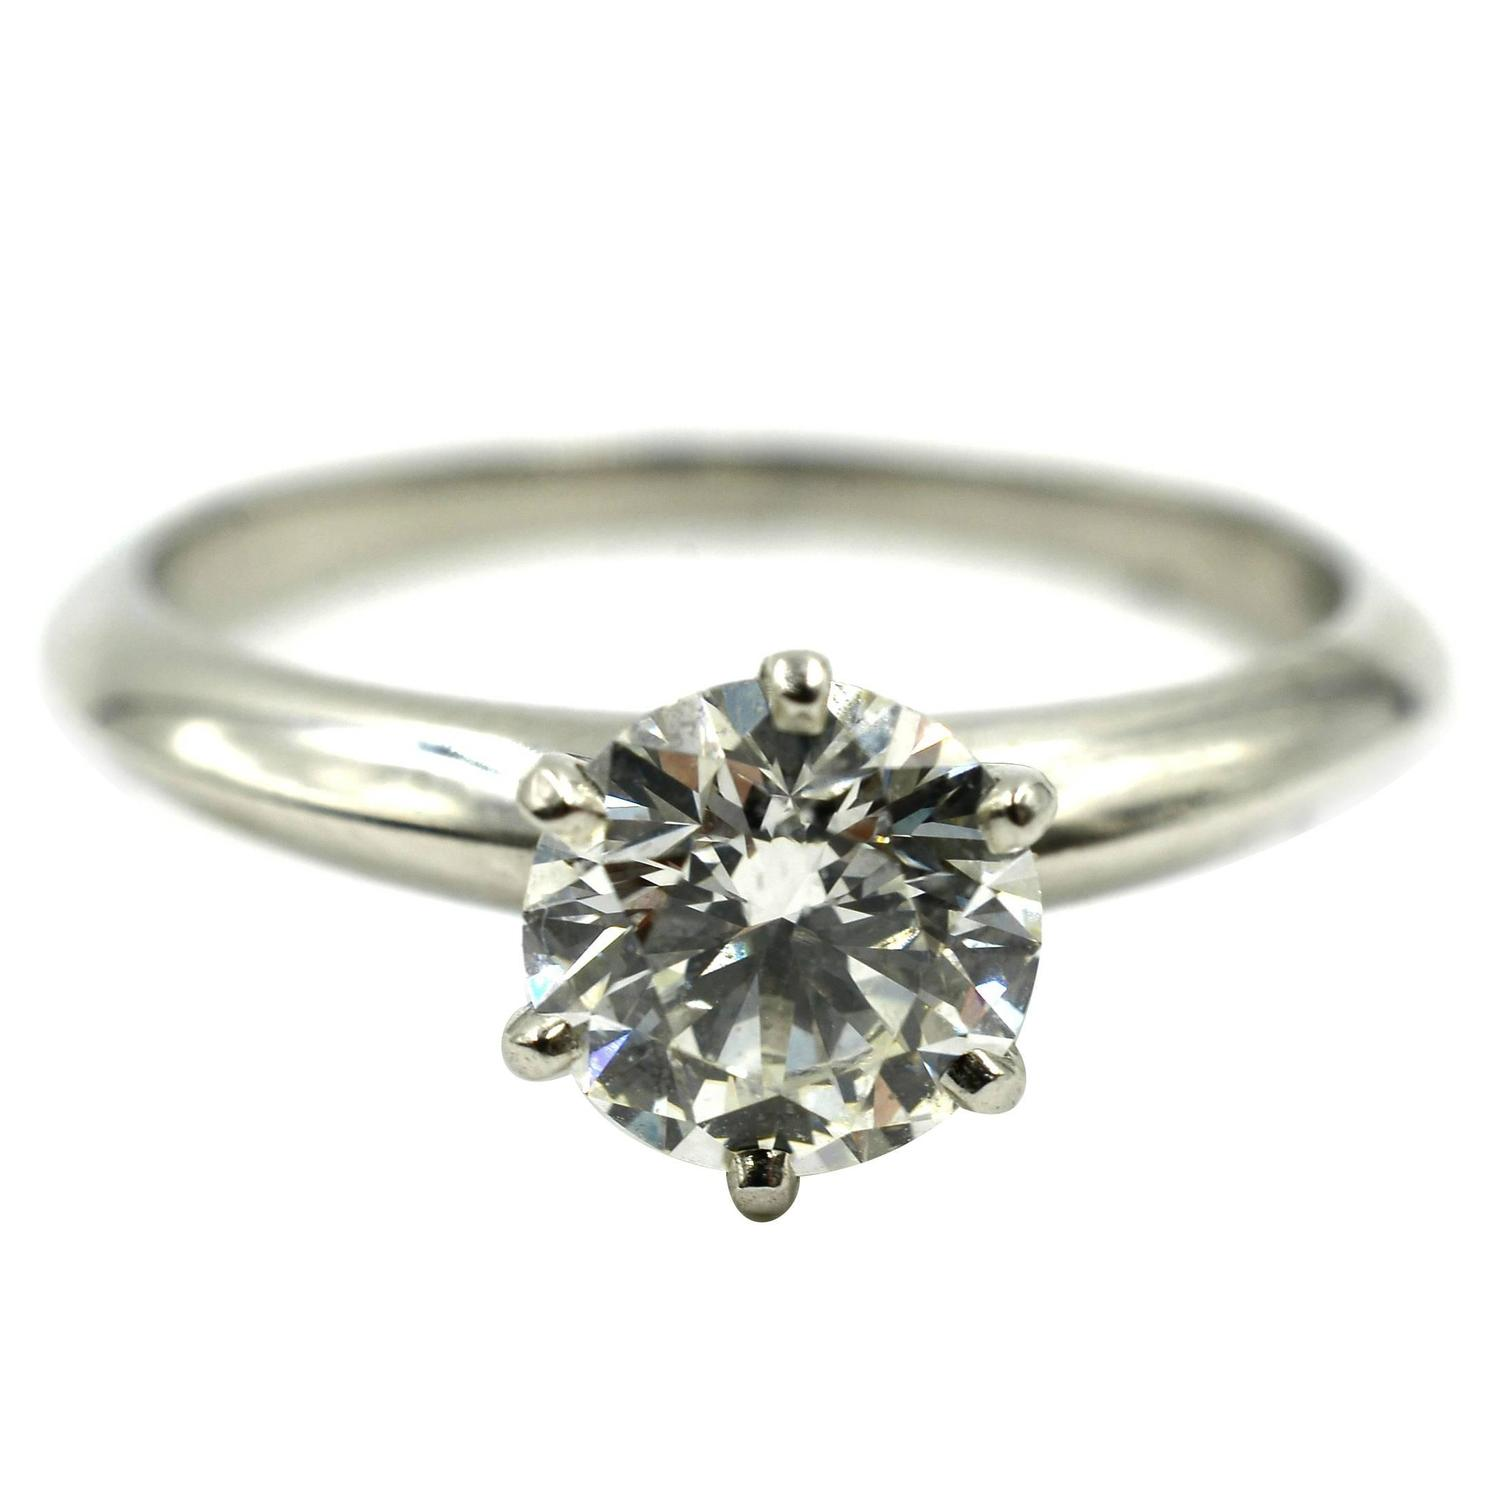 Tiffany and Co 1 33 Carat GIA Cert Diamond Platinum Engagement Ring at 1stdibs